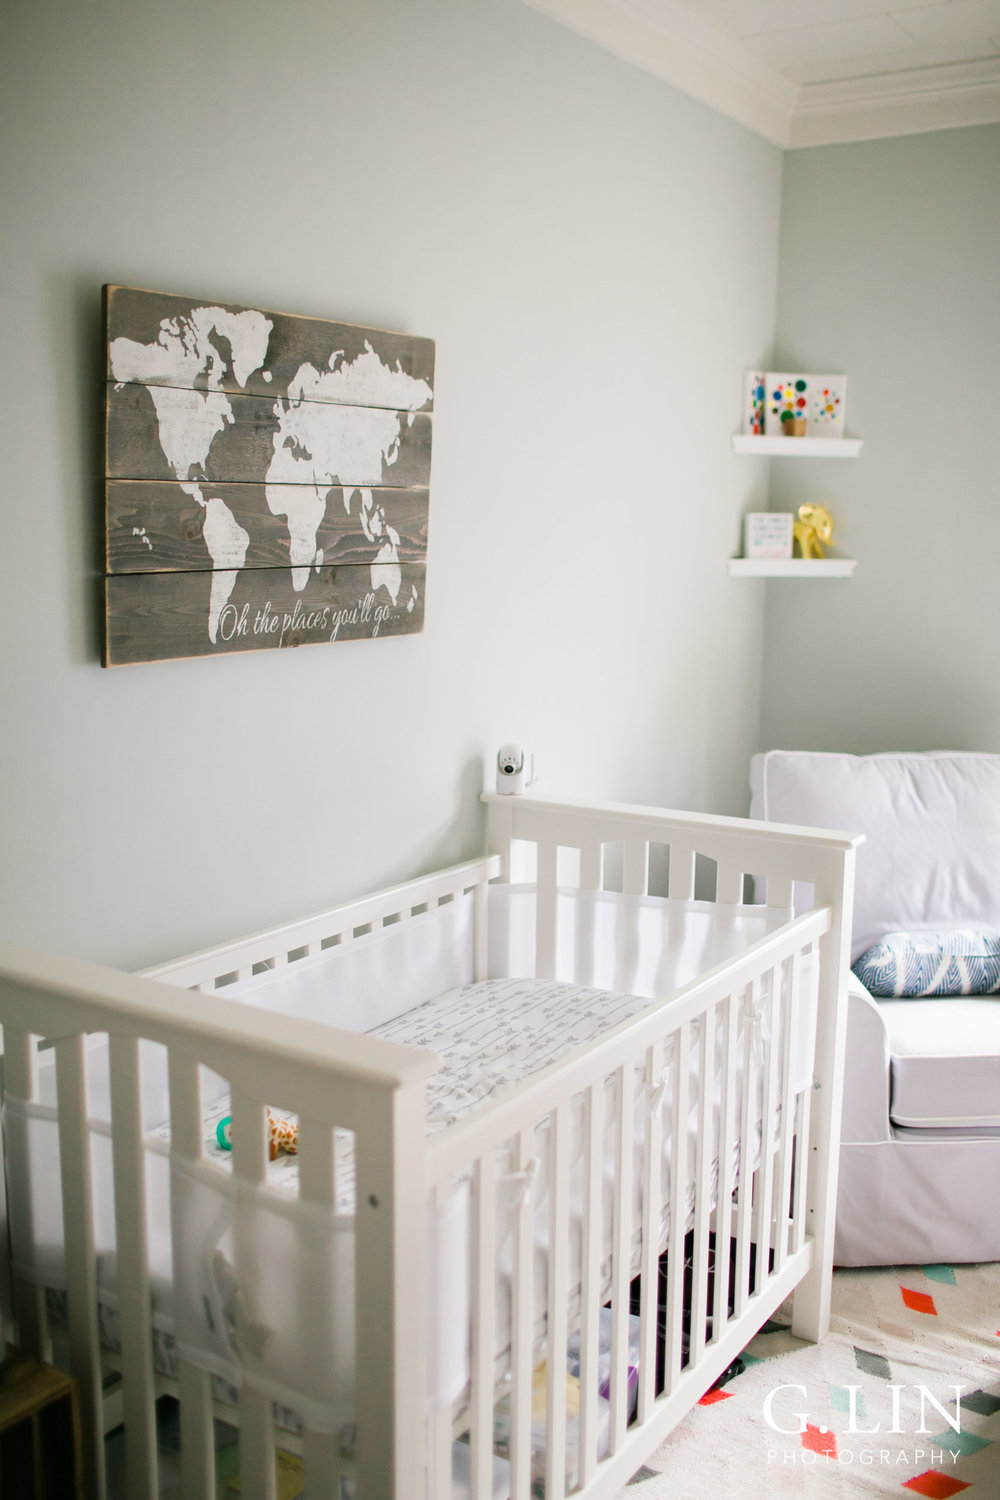 Durham Family Photographer | G. Lin Photography | Modern nursery with travel theme